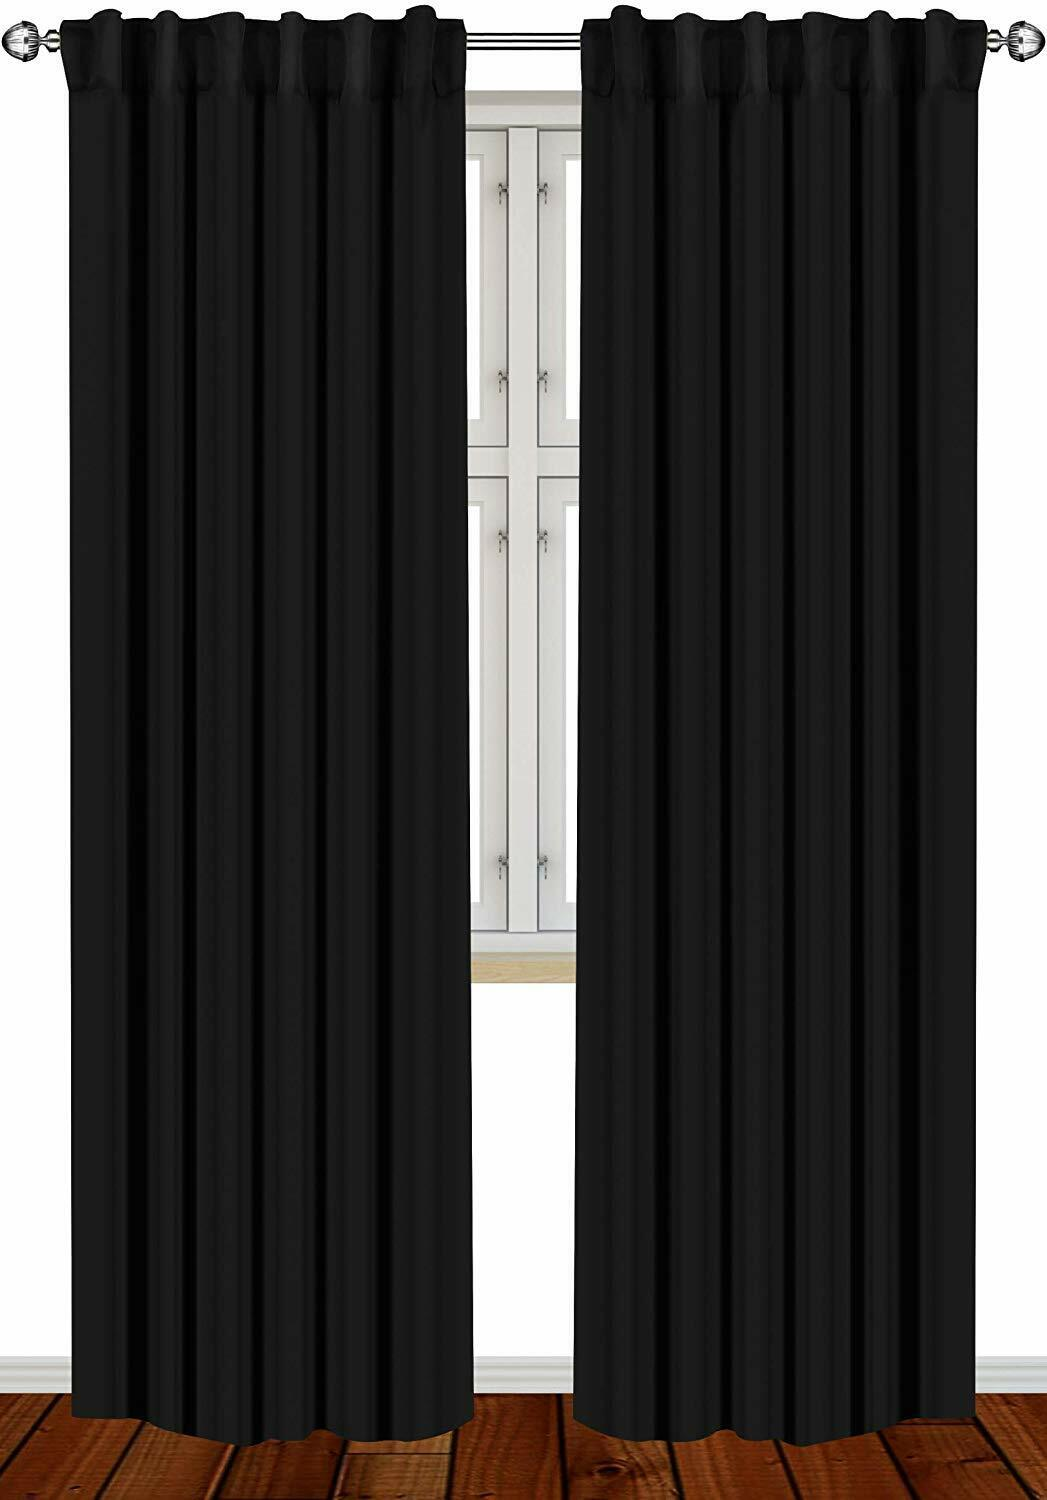 Window Curtains Blackout Room Thermal Insulated 2 Panels 52x